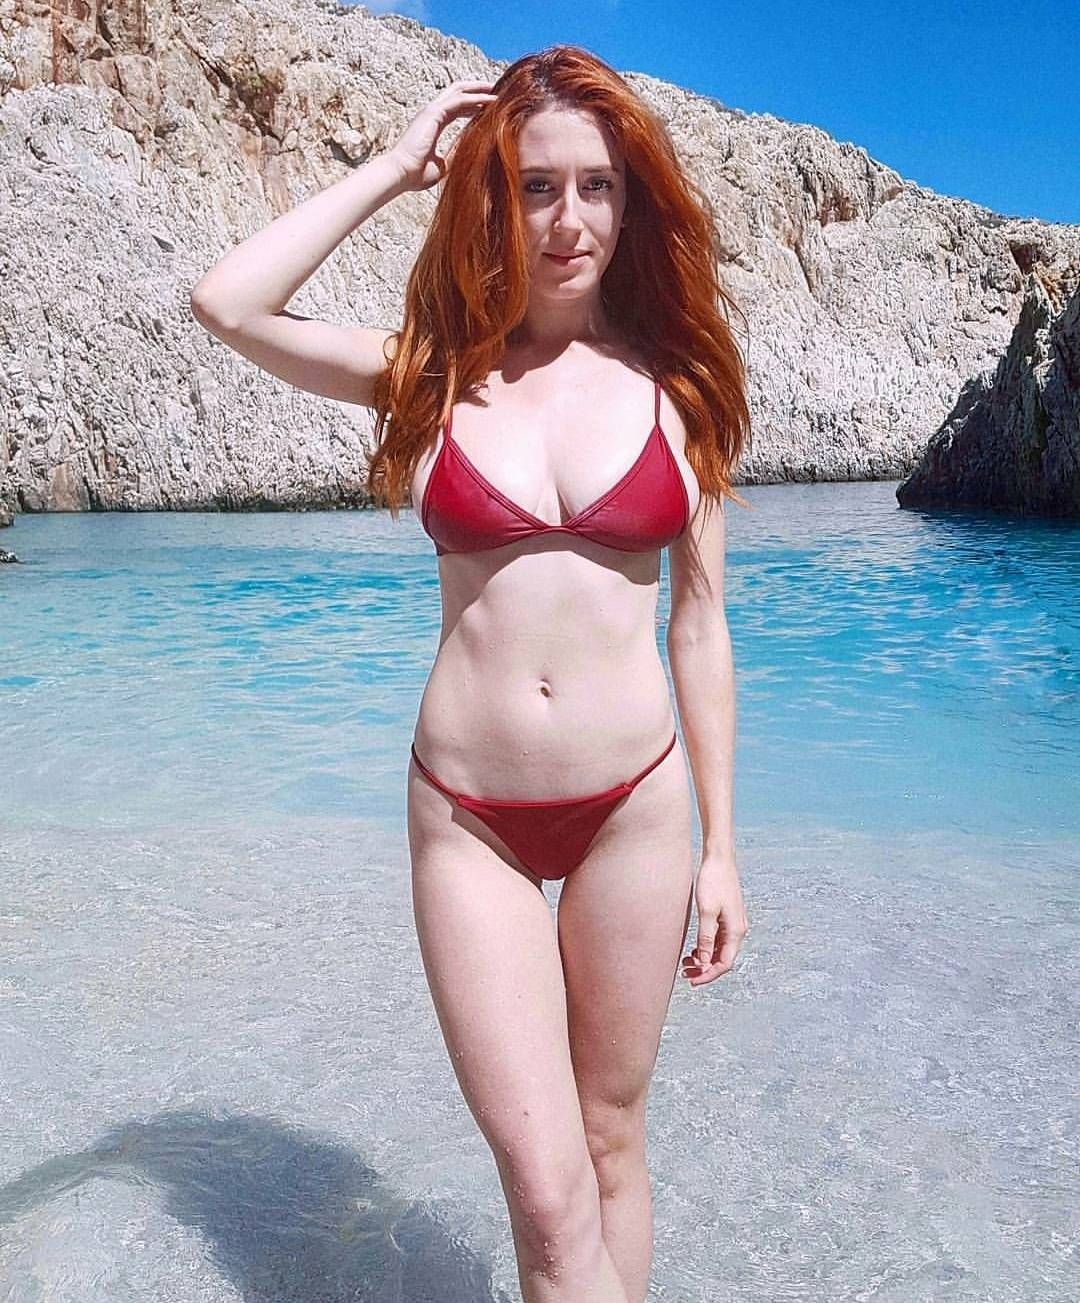 skinny lil red head by the lagoon sexy red